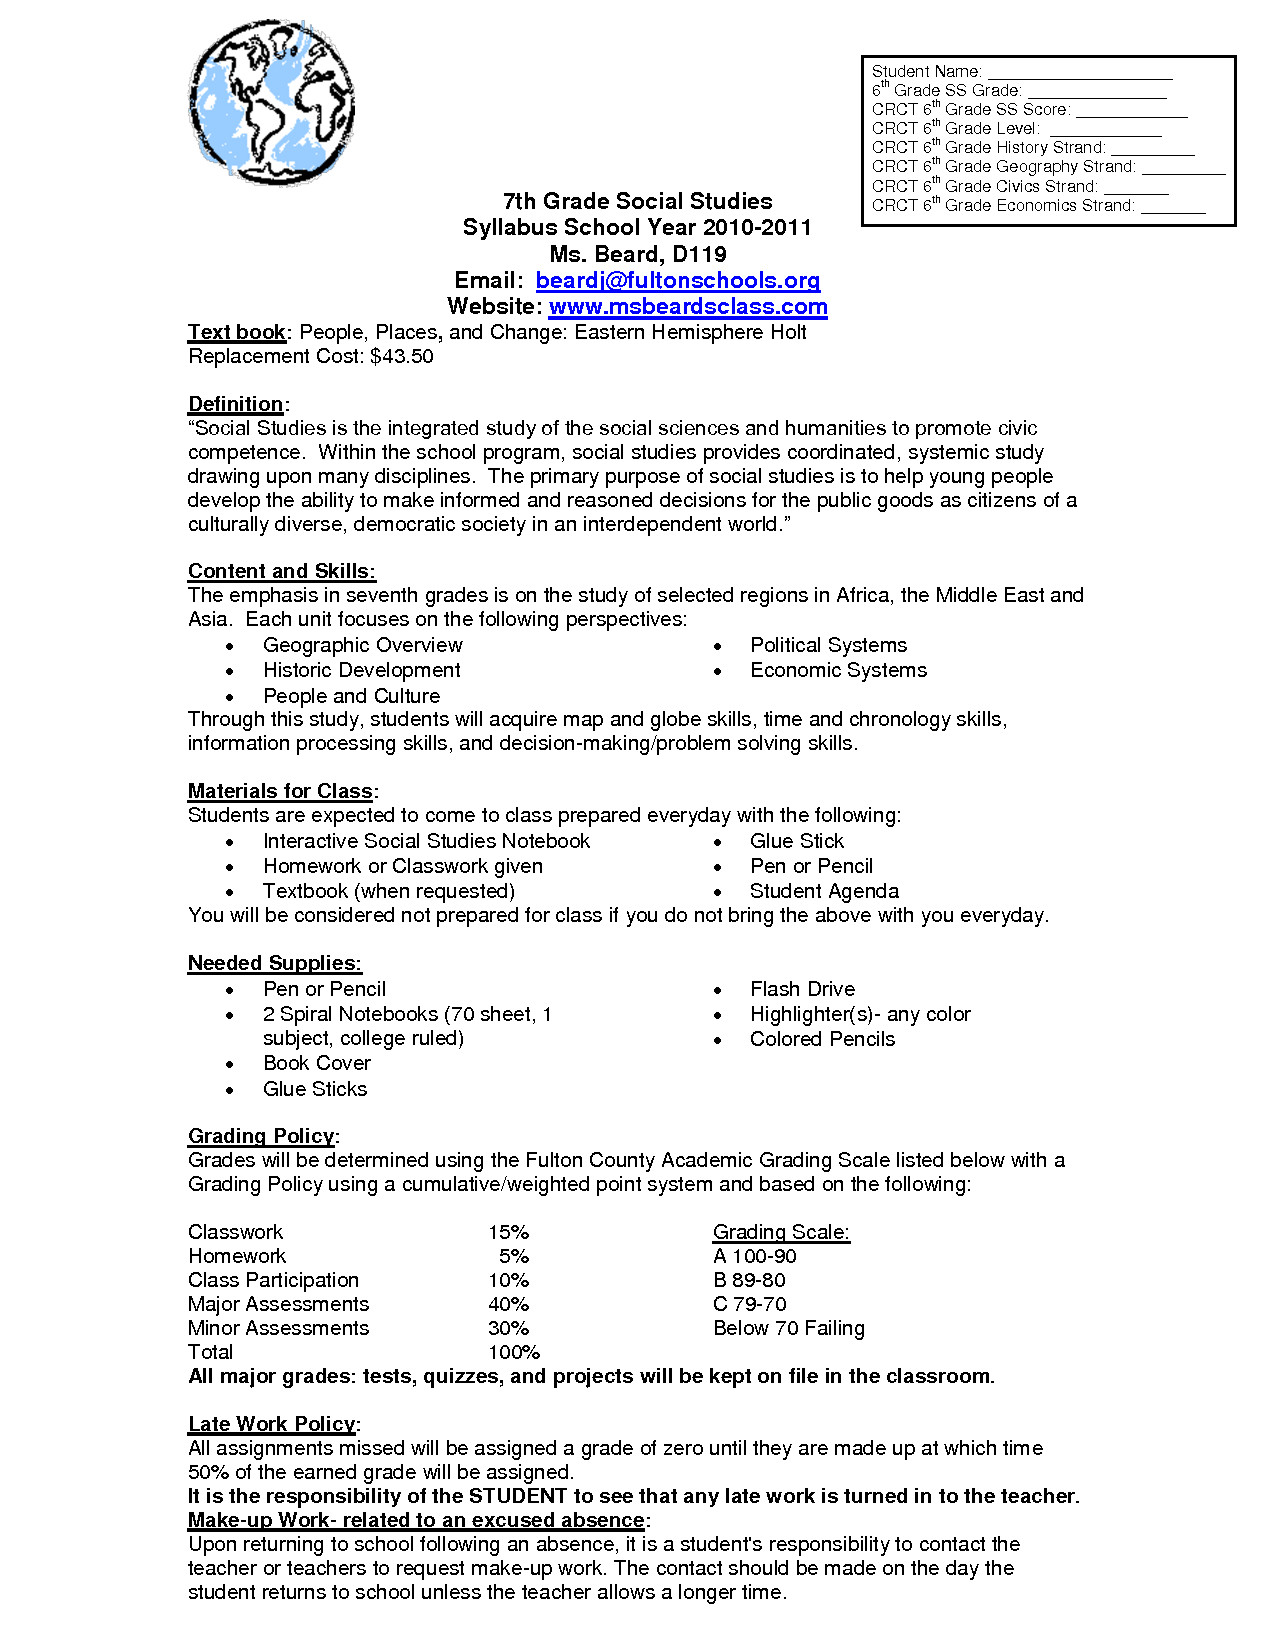 7th Grade Texas History Worksheets Best social Stu S for 7th Graders Worksheet